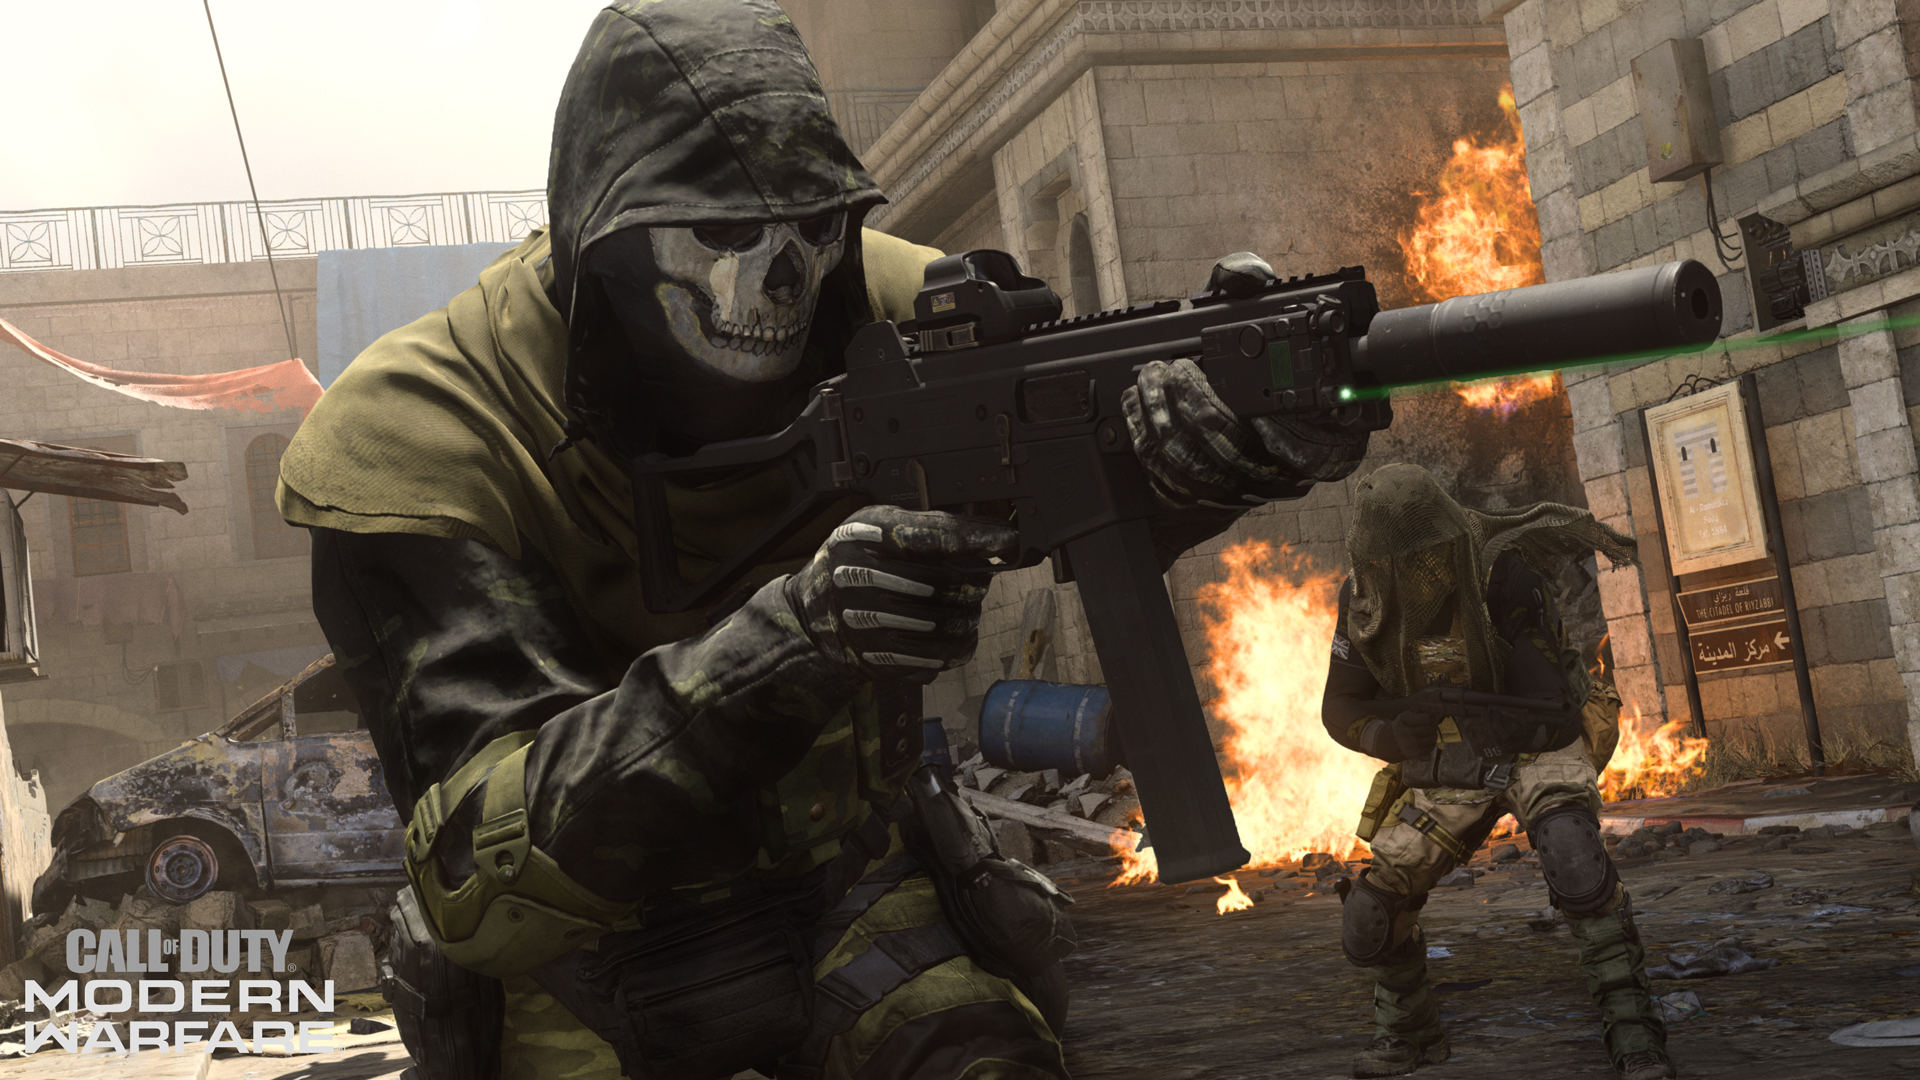 This Week in Call of Duty - March 30 - Image 7